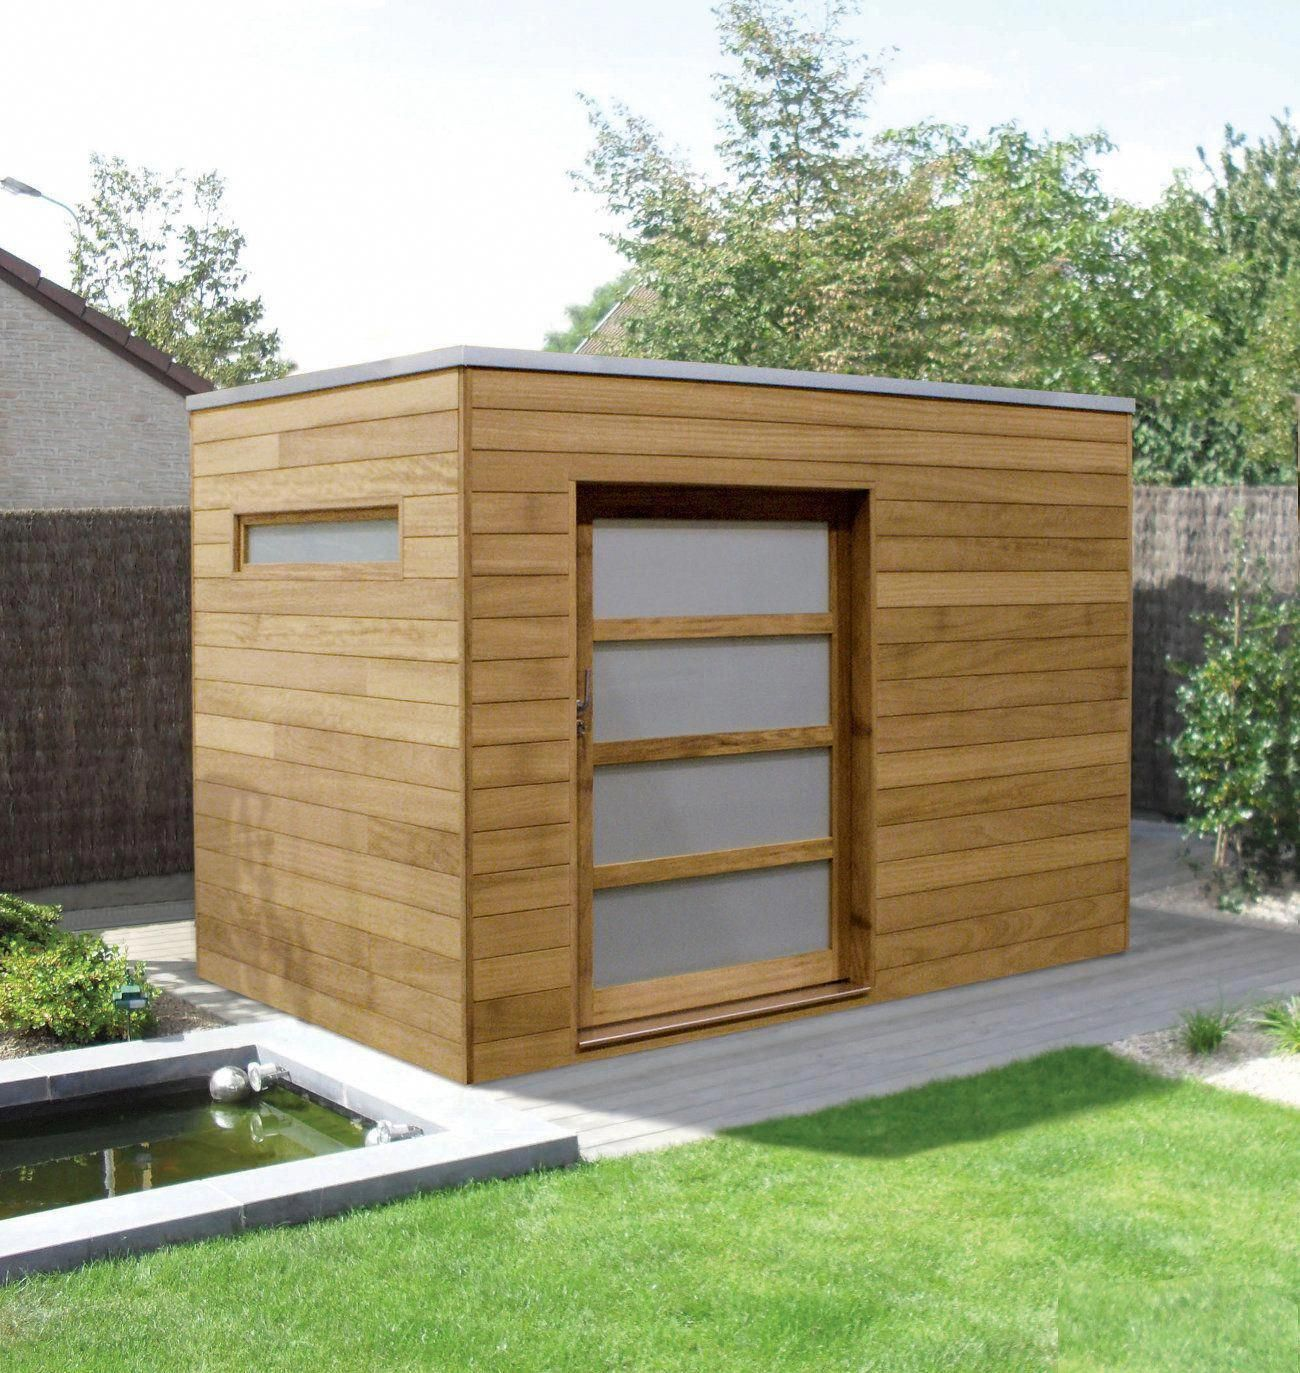 Modern Garden Sheds To Style With Our New Innovative Range Of Contemporary Garden Sheds Shedide Contemporary Sheds Contemporary Garden Building A Shed